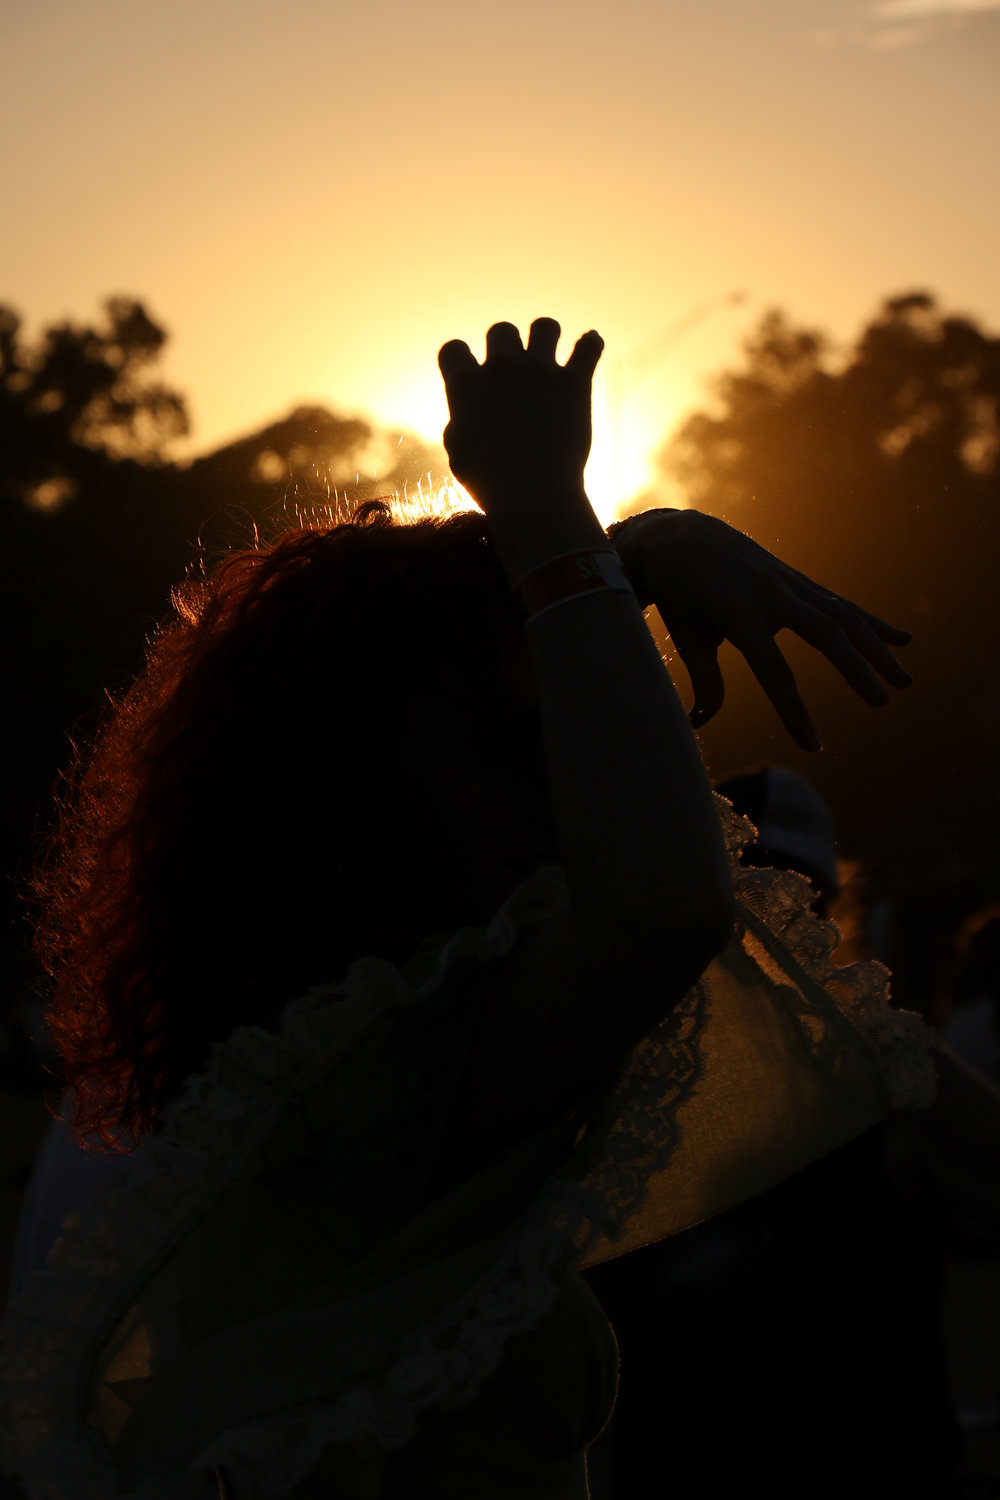 A woman dances in the sunset to one of the night's shows.